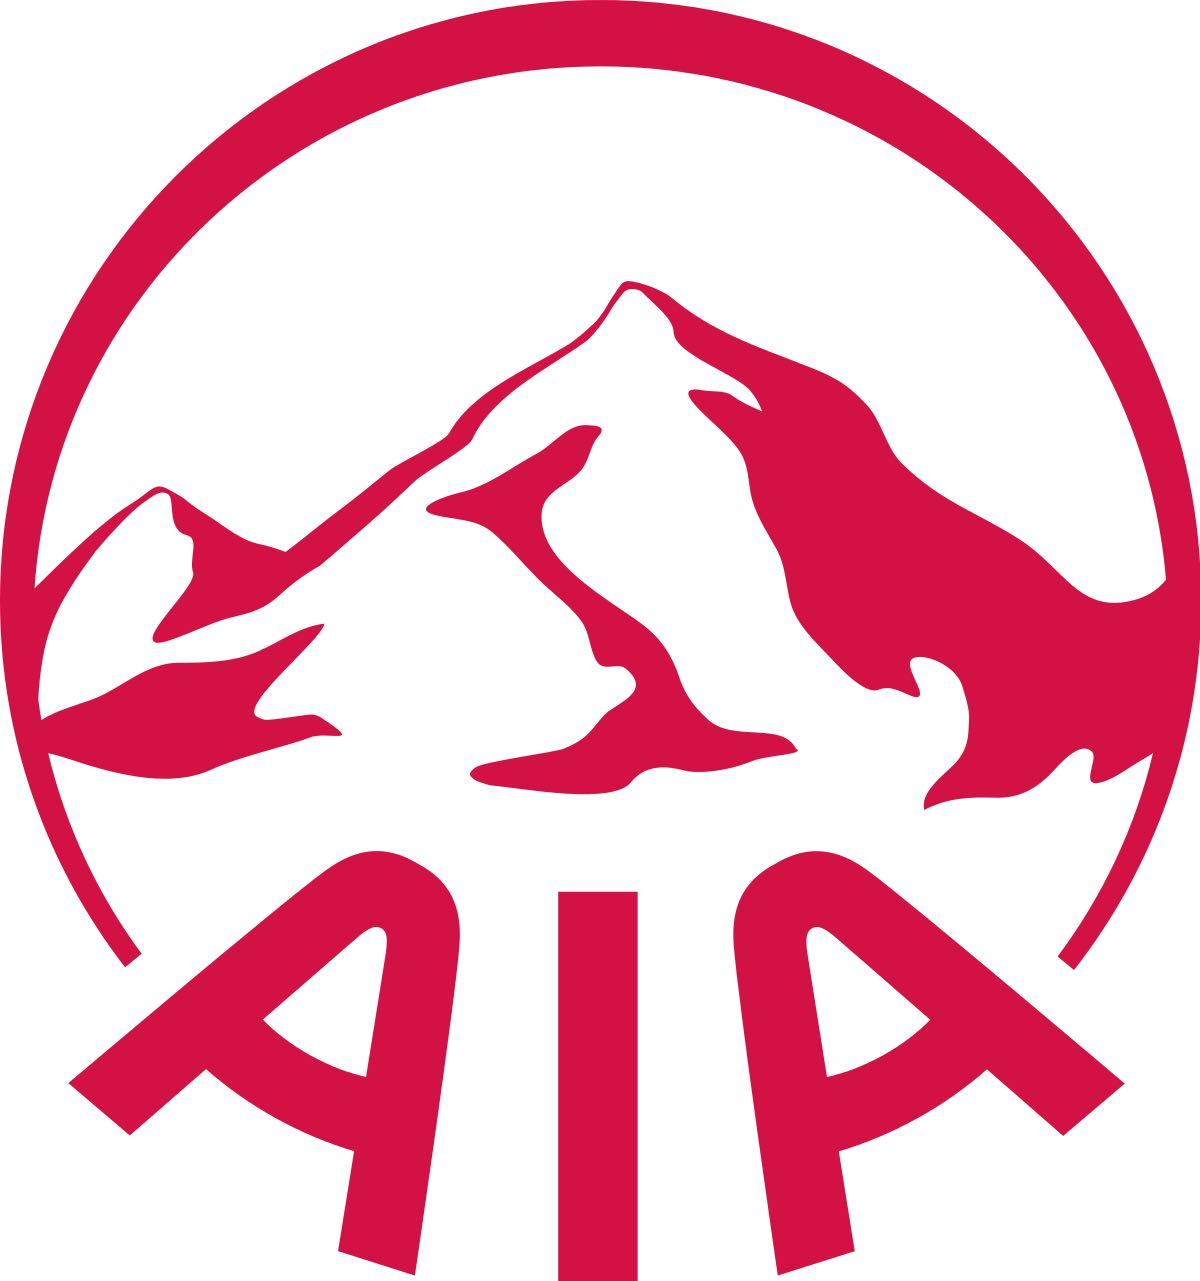 AIA Financial Planner 財務策劃顧問